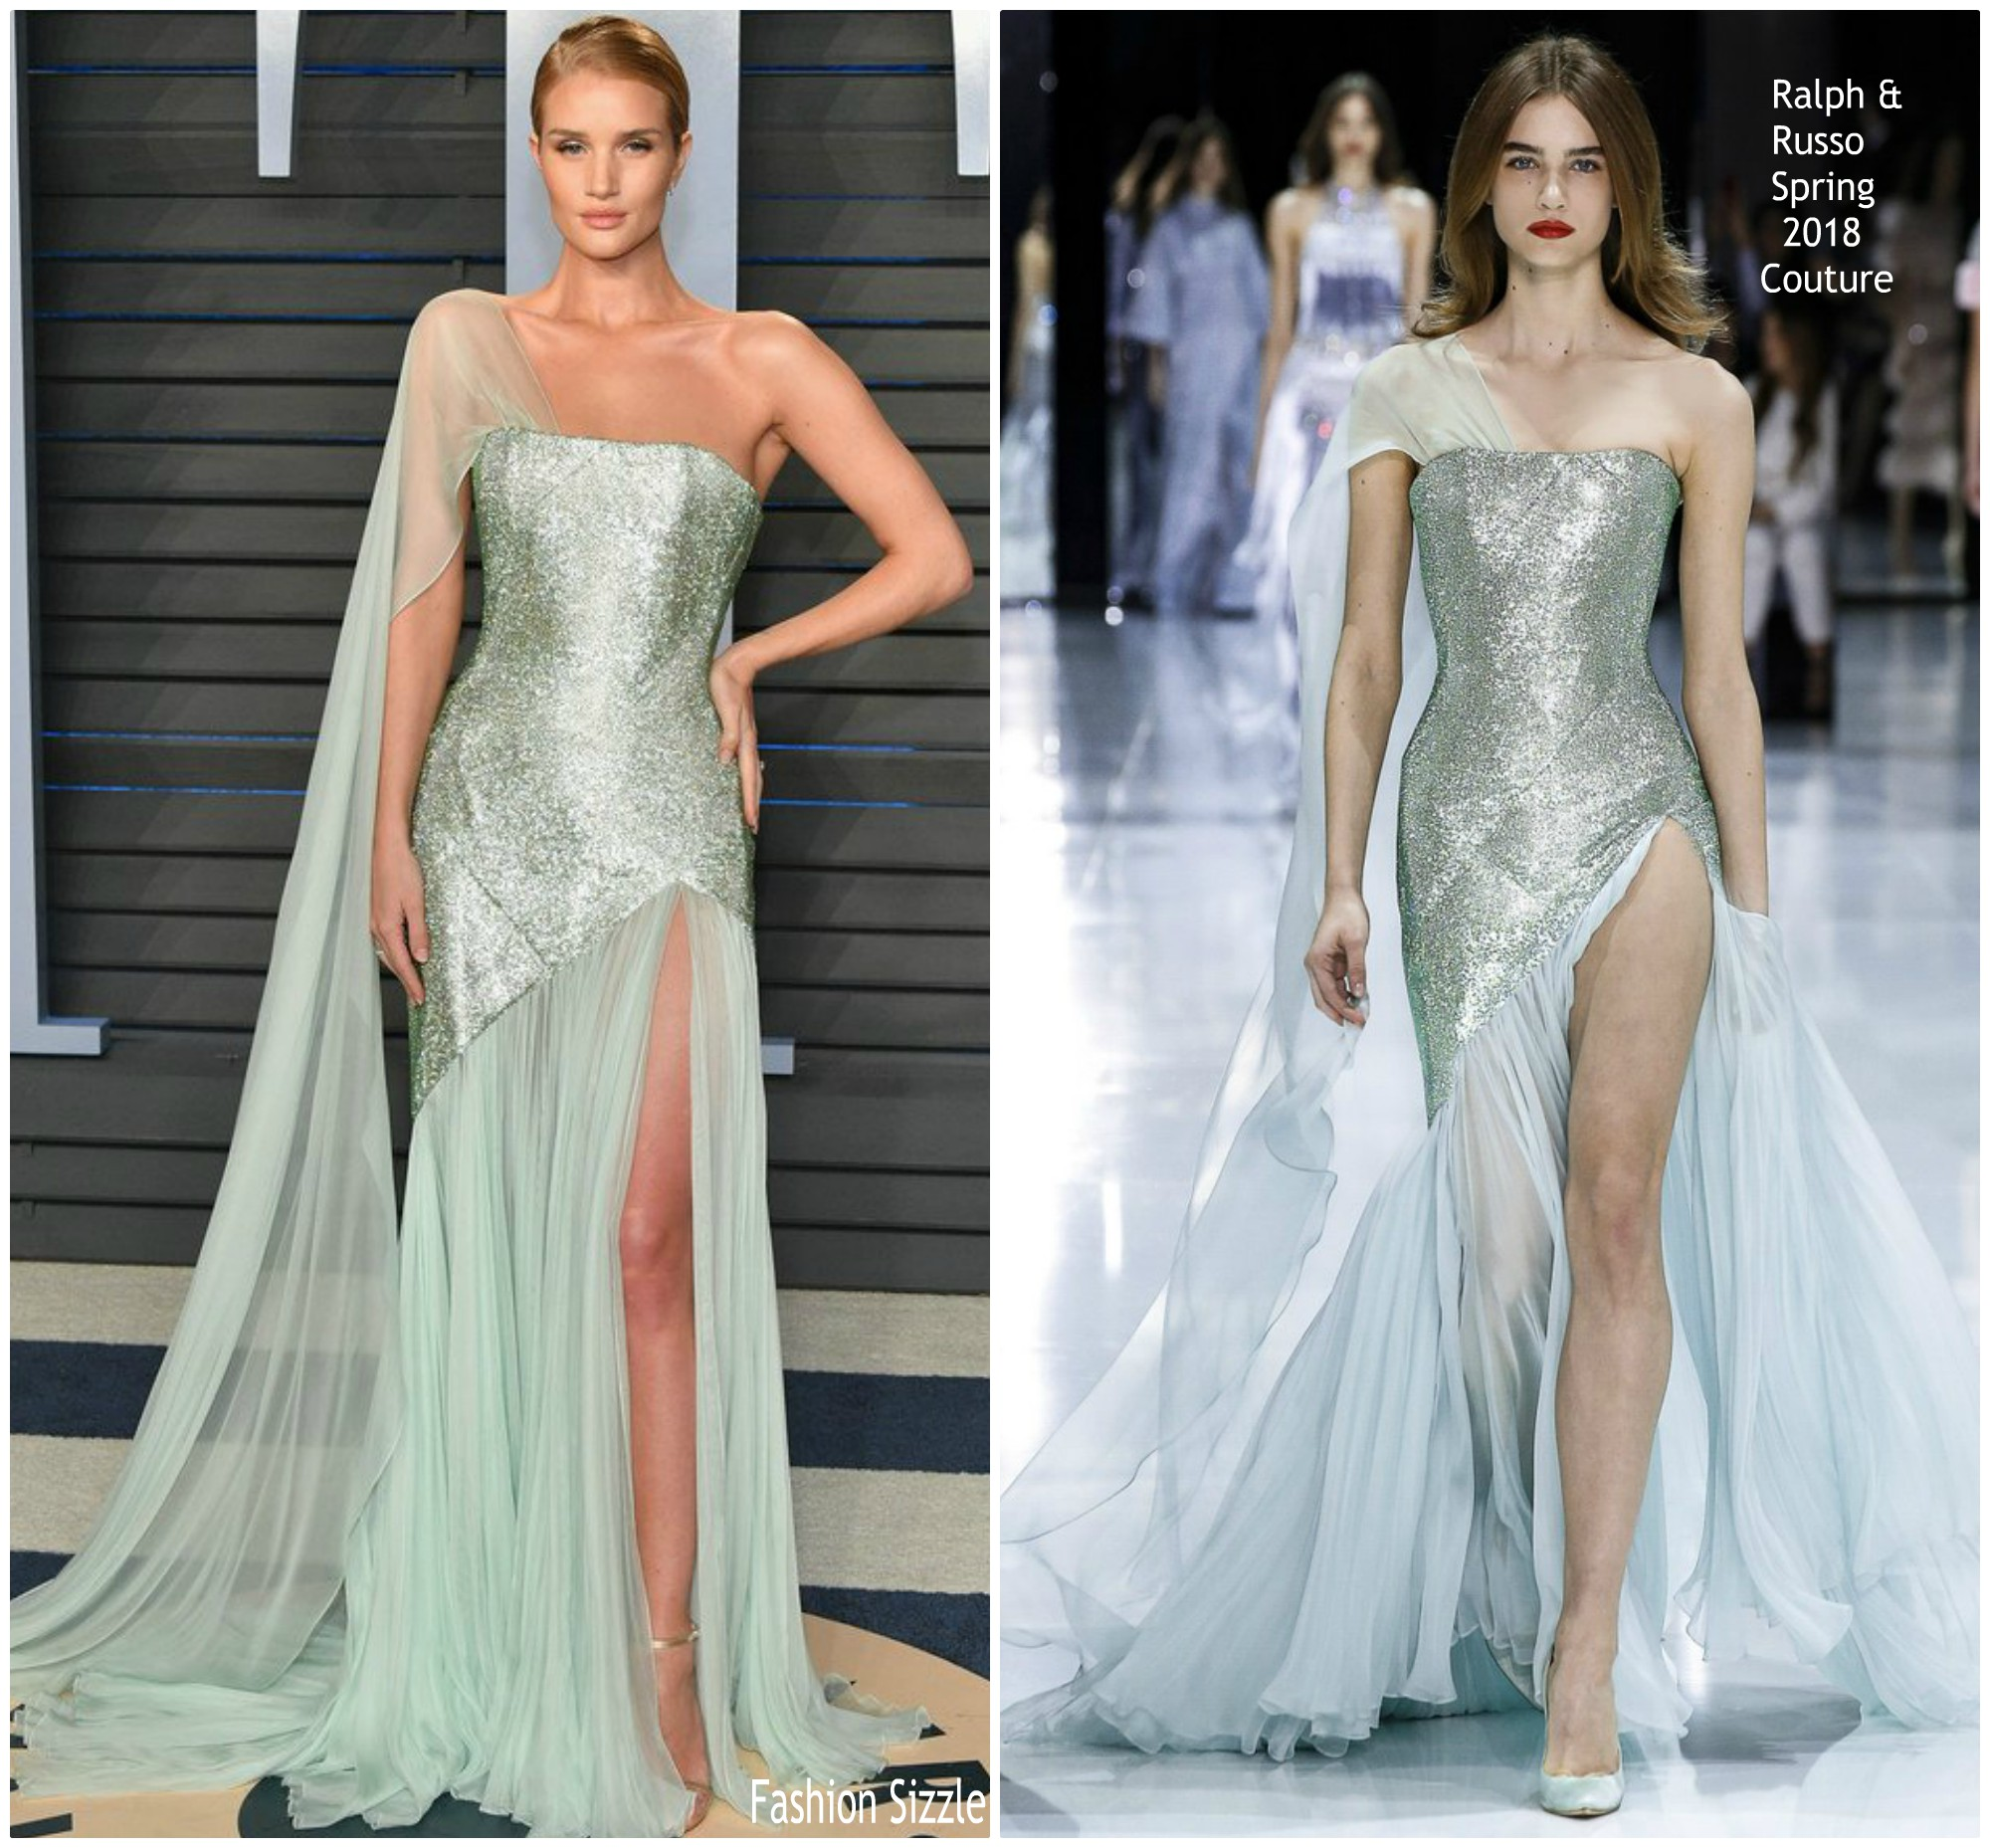 rosie-huntington-whiteley-in-ralph-russo-2018-vanity-fair-oscar-party